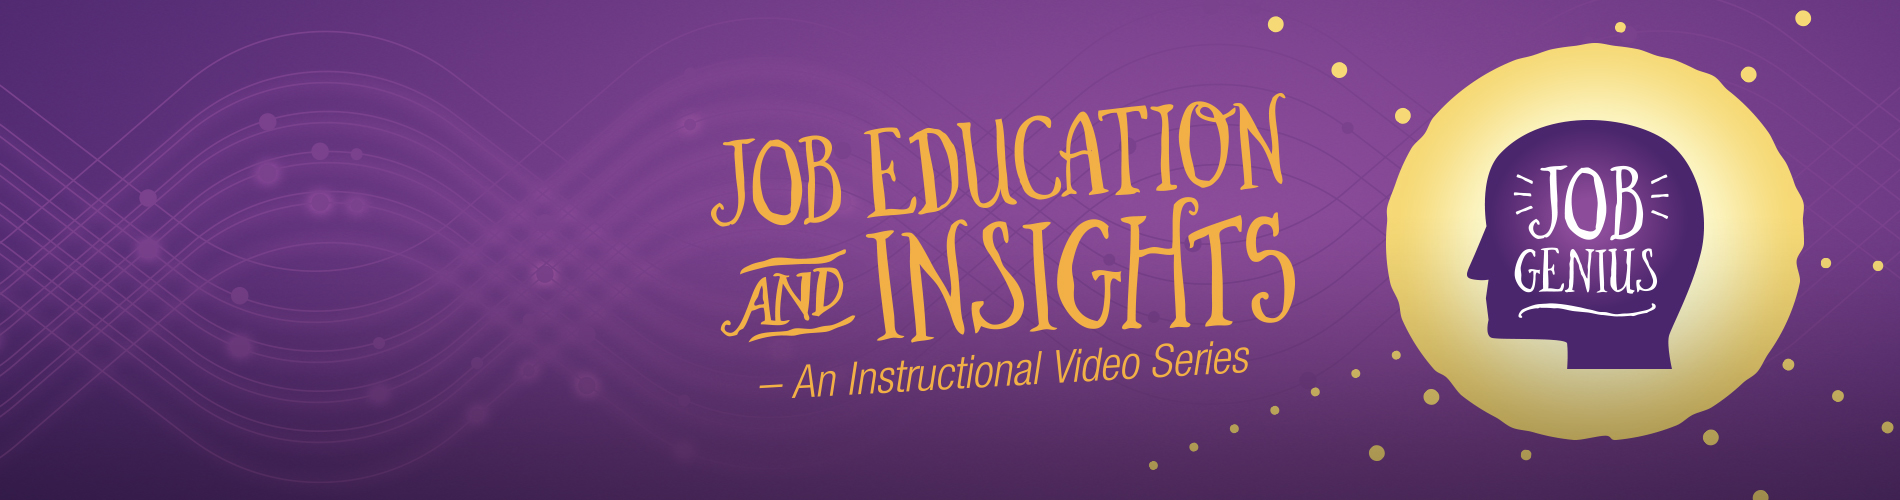 Job Genius Home Page Banner